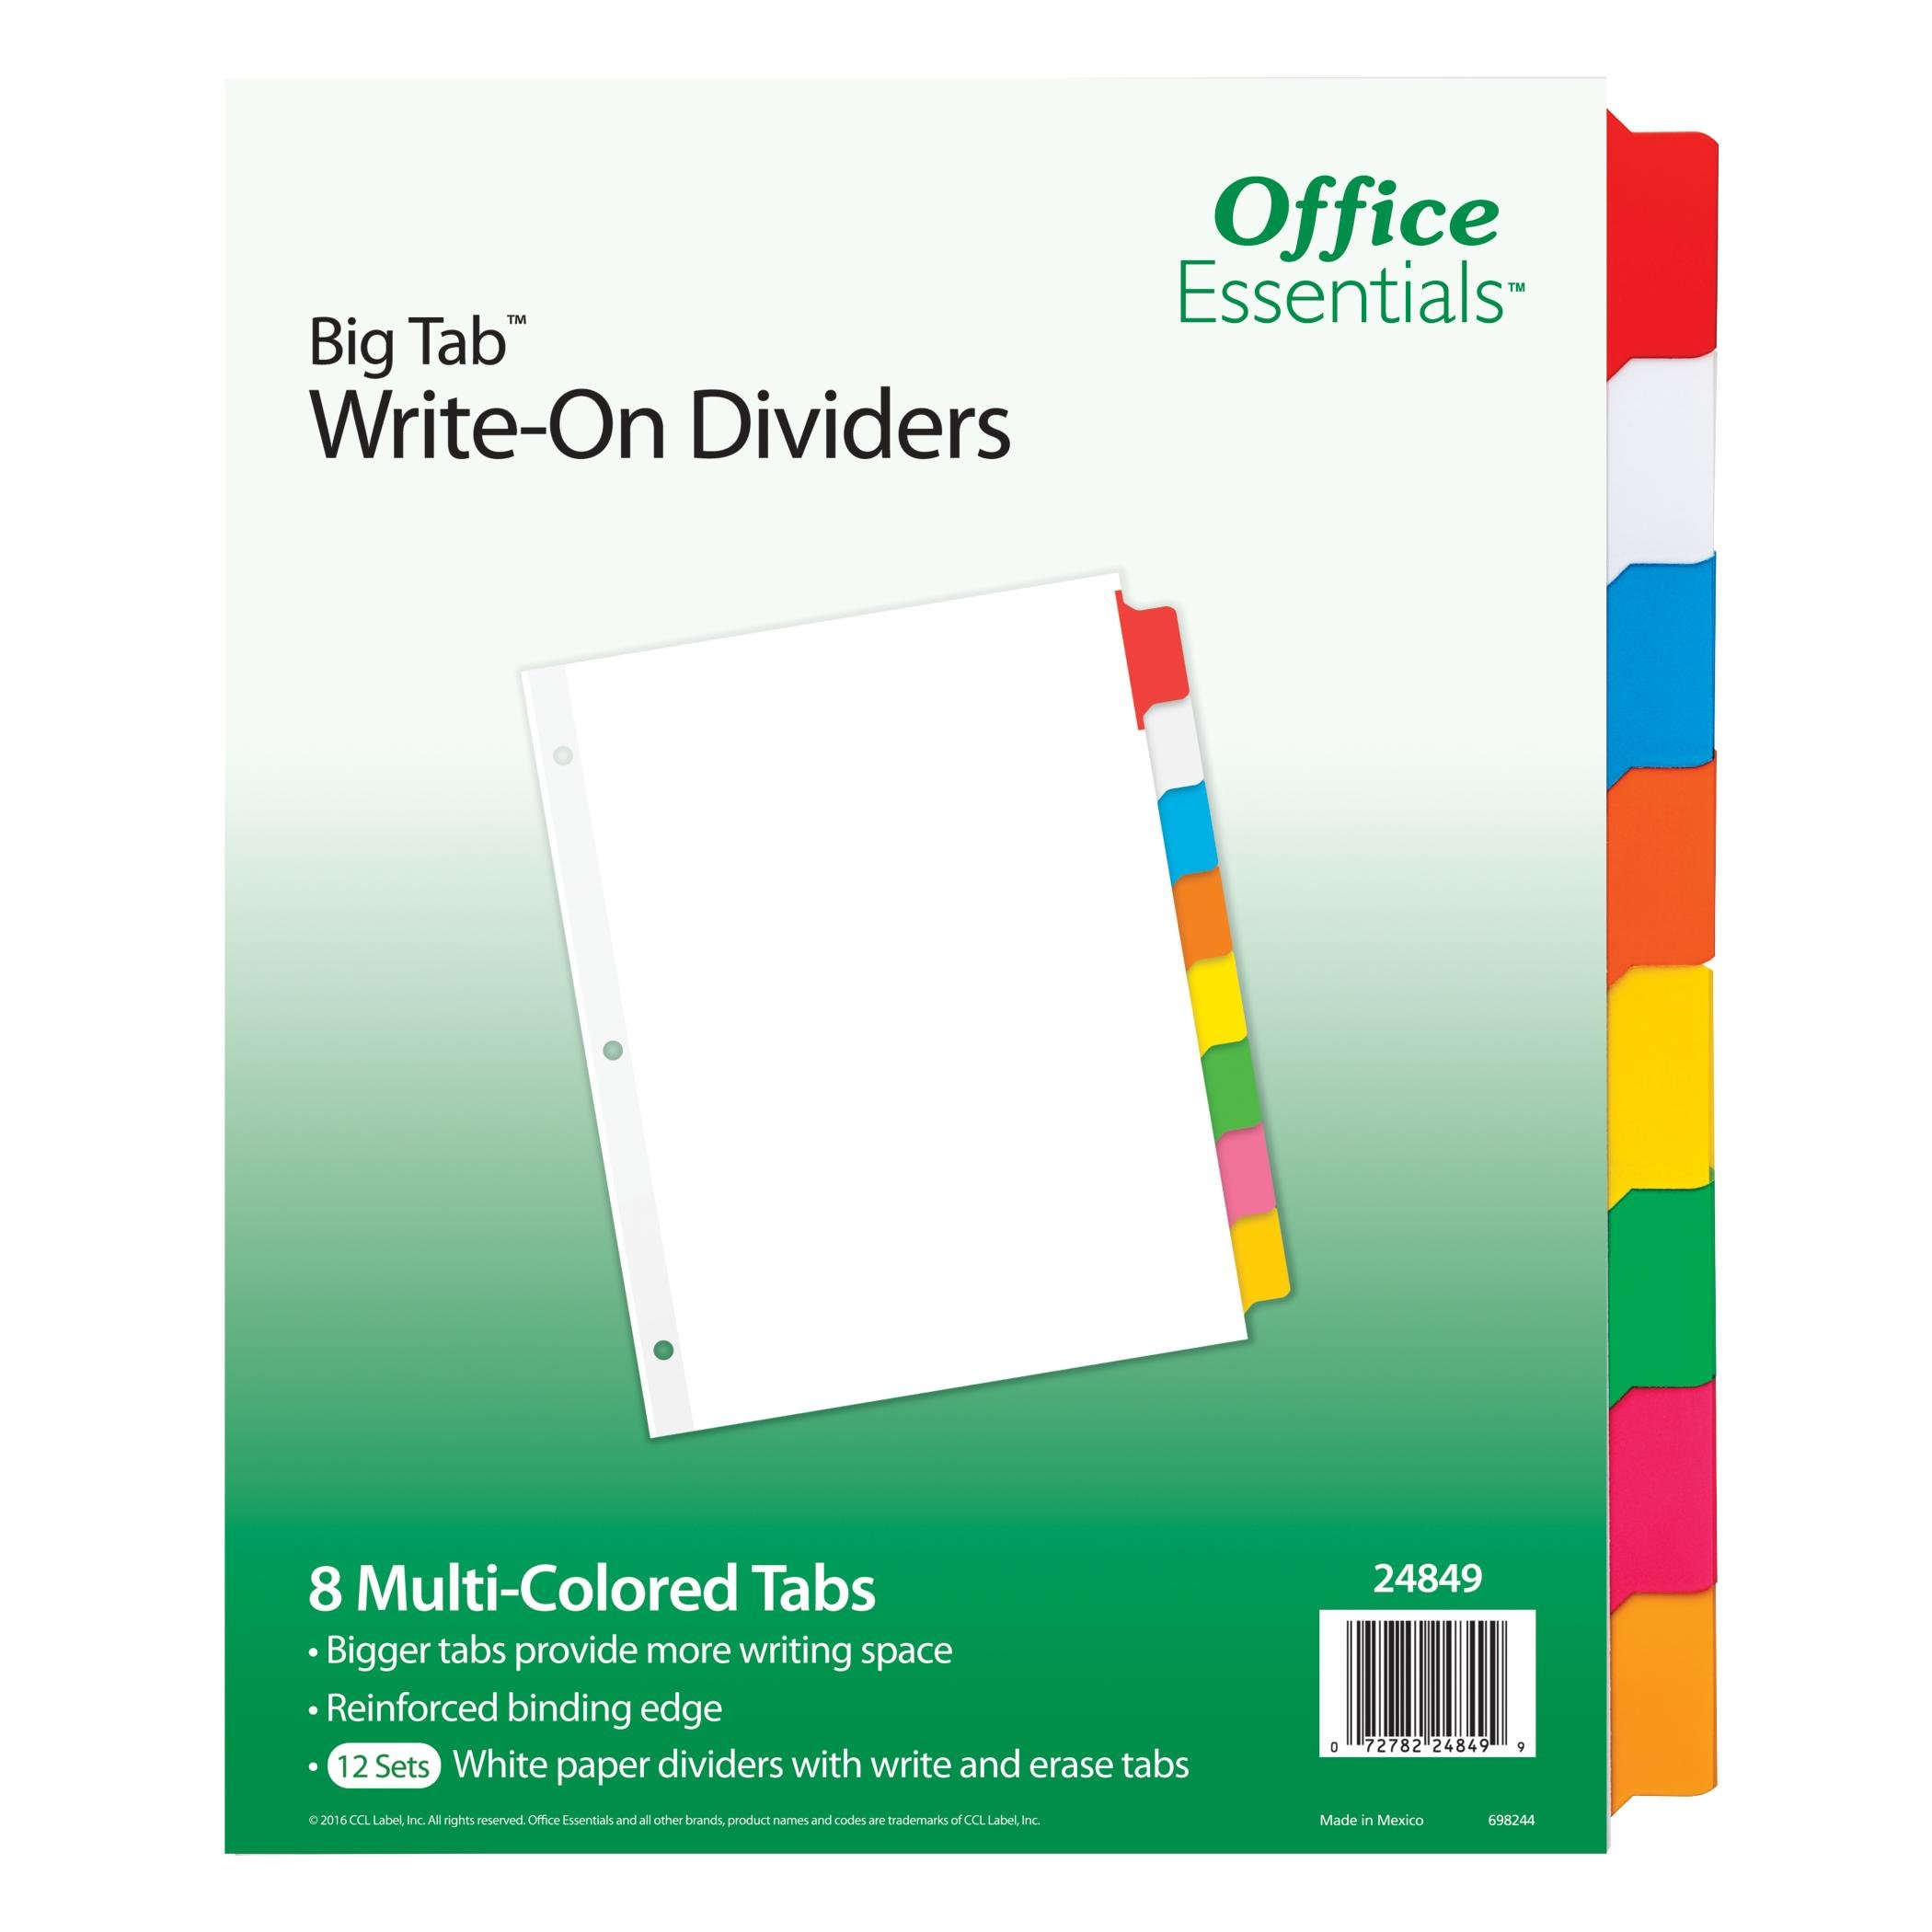 Office Essentials Big Tab Write-On Dividers, 8-1/2'' x 11'', 8 Tab, Multicolor Tab, 12 Pack (24849)